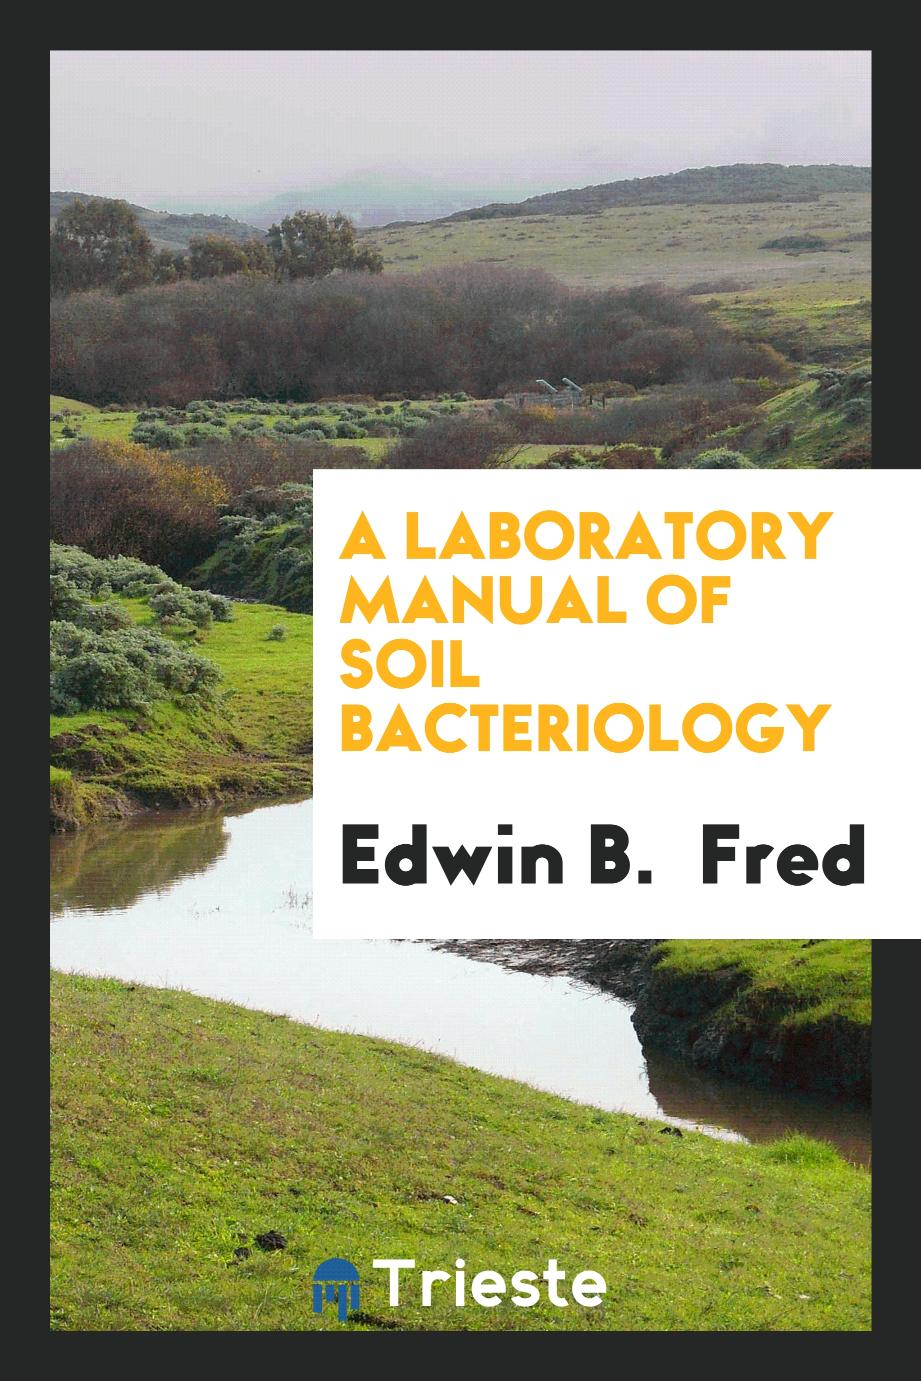 A Laboratory Manual of Soil Bacteriology